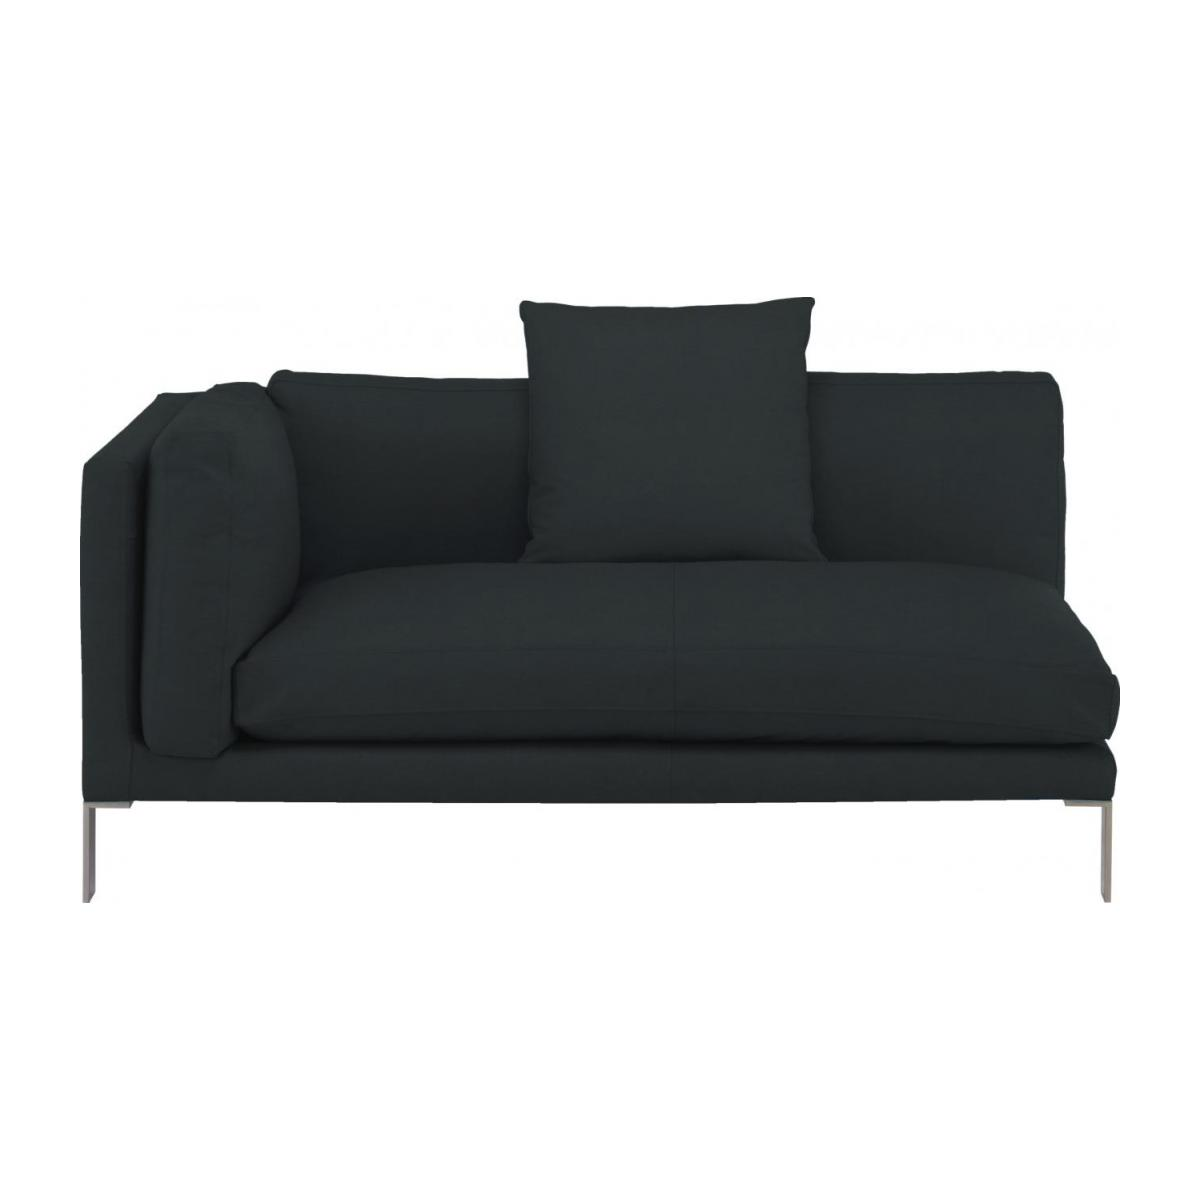 Leather left-arm 2 seater sofa n°3